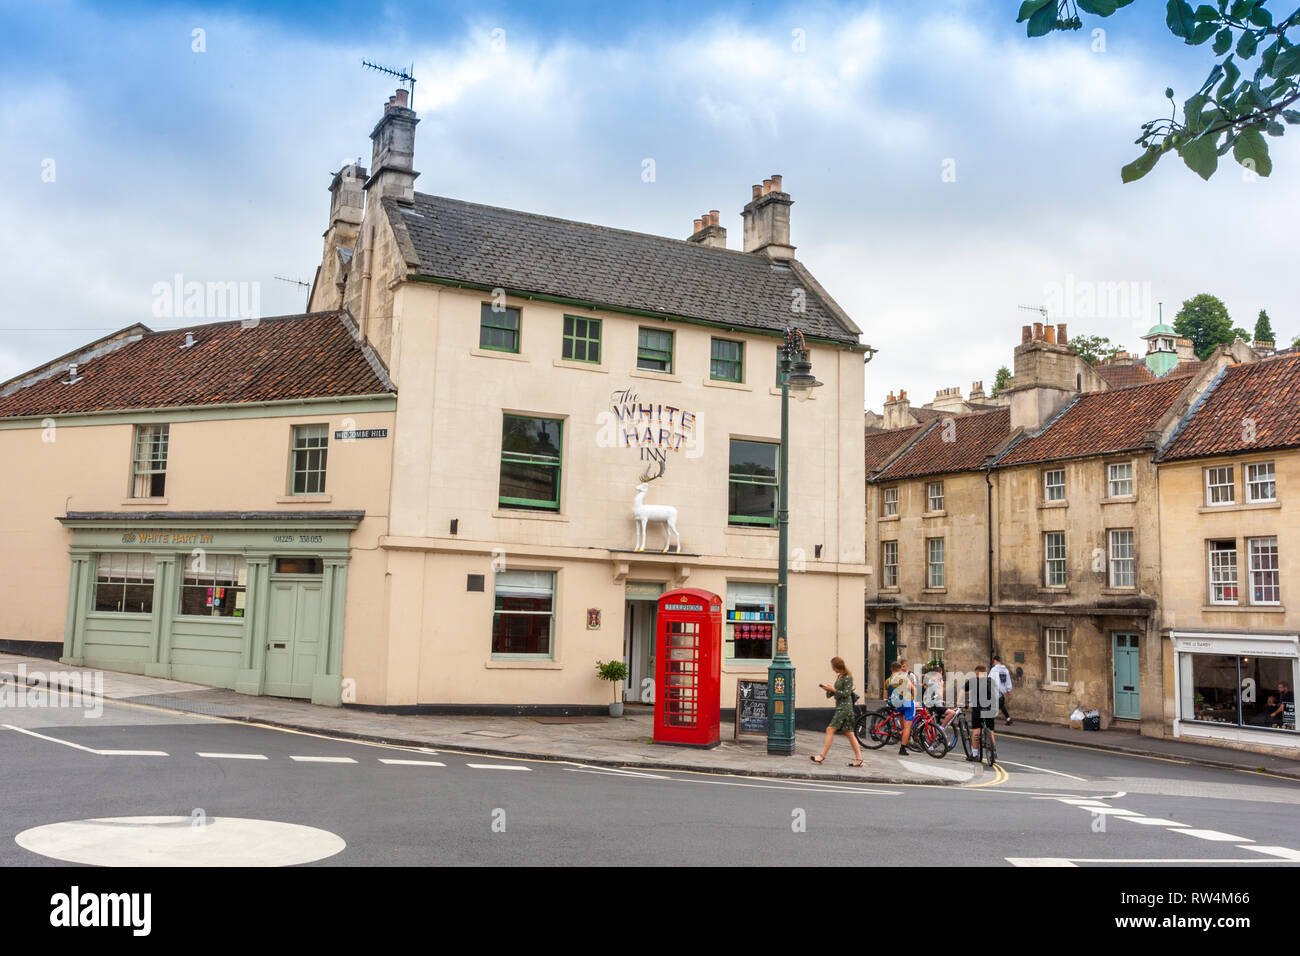 The White Hart Inn in at the bottom of Widcombe Hill in Bath, N.E. Somerset, England, UK - Stock Image